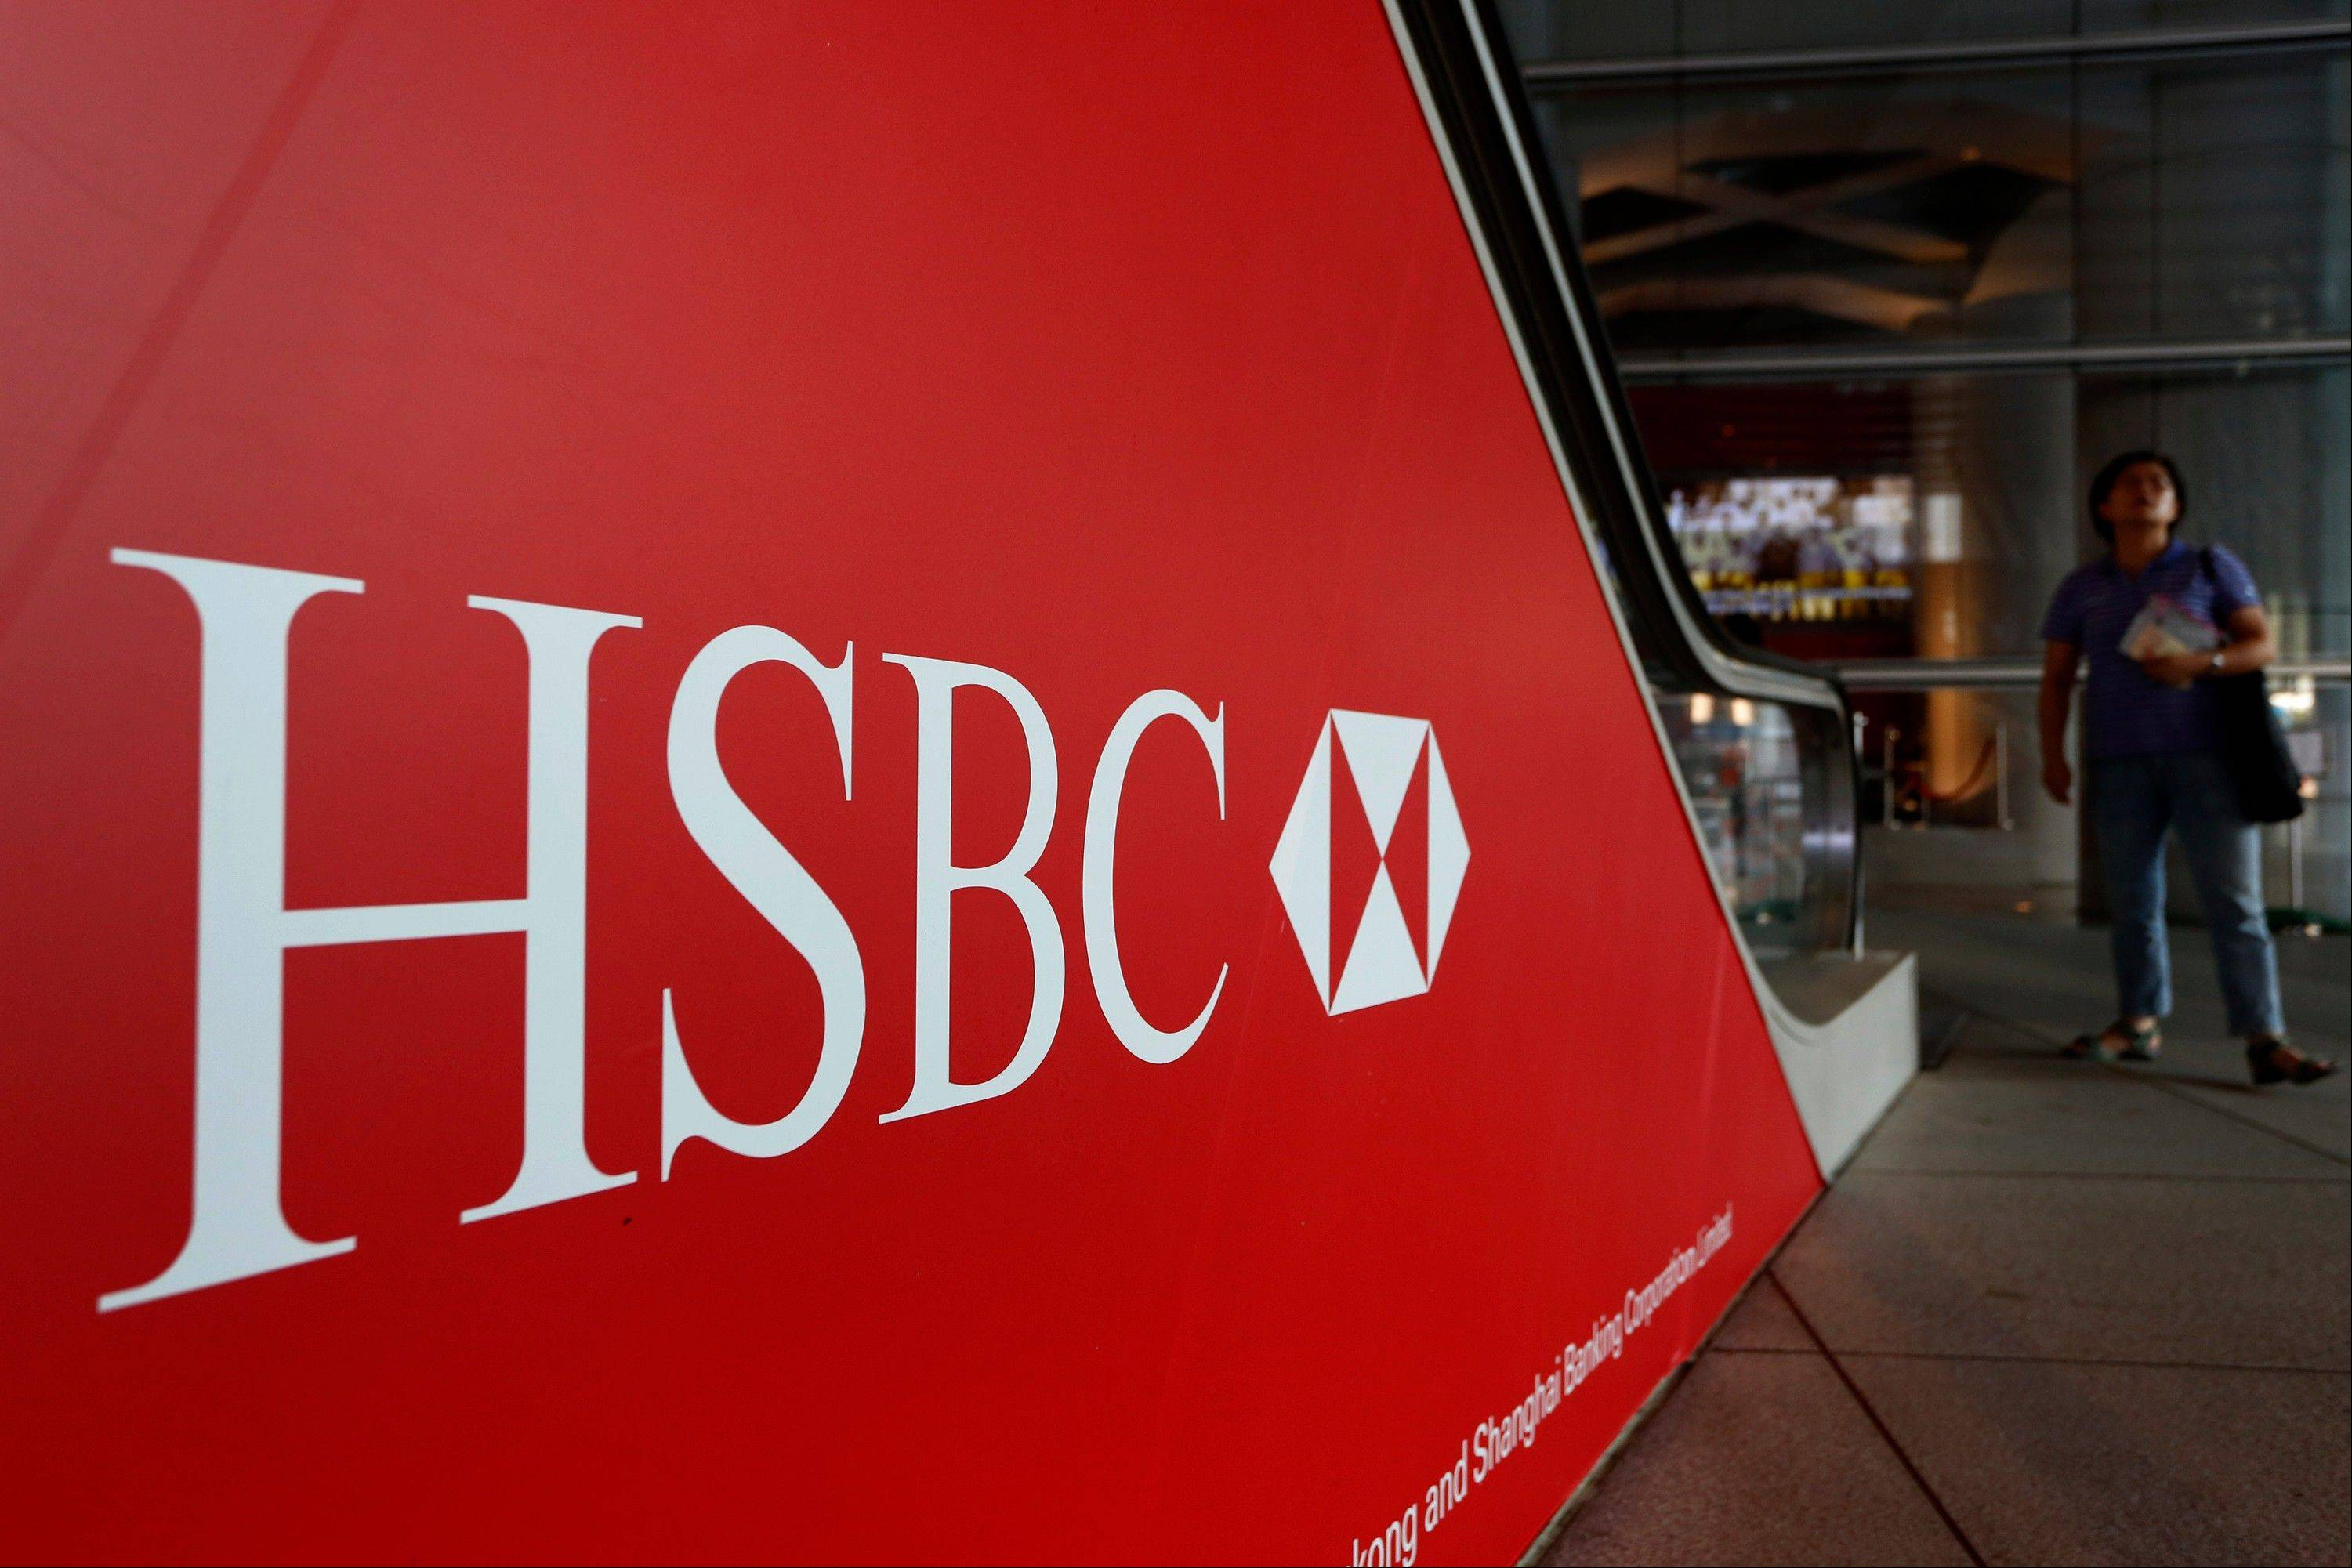 HSBC, the British banking giant, will pay $1.9 billion to settle a money-laundering probe by federal and state authorities in the United States, a law enforcement official said Monday.